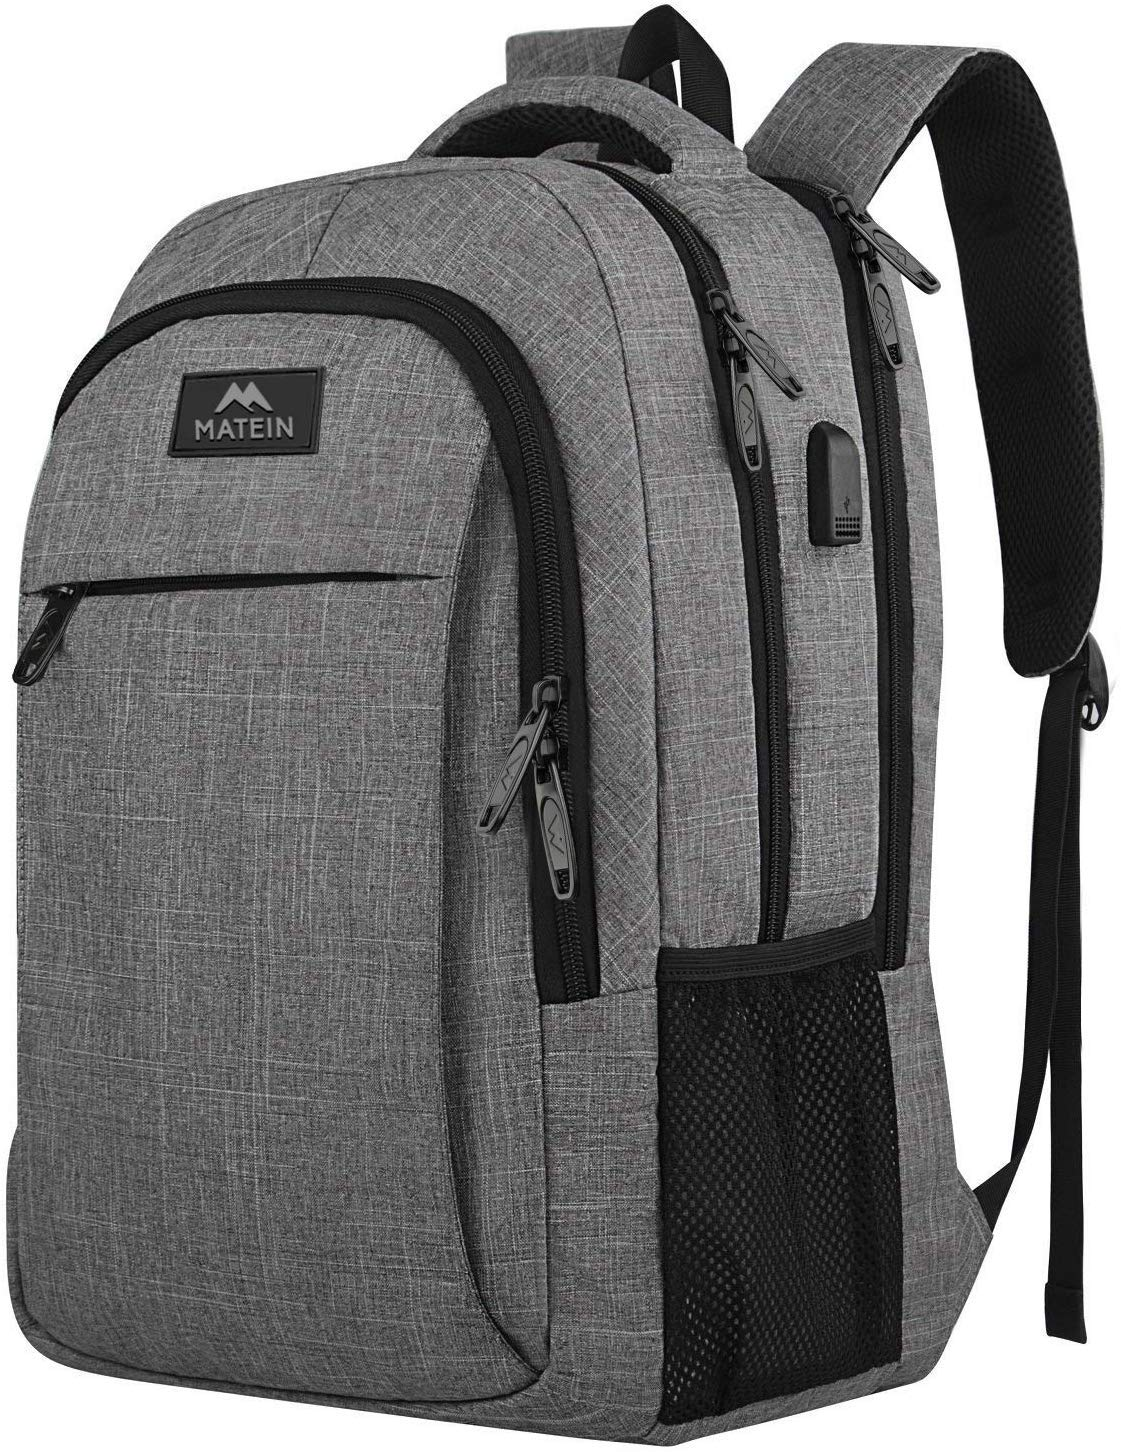 Travel Laptop Backpack,Business Anti Theft Slim Durable Laptops Backpack with USB Charging Port,Water Resistant College School Computer Bag for Women Men Fits 15.6 Inch Laptop and Notebook, Grey